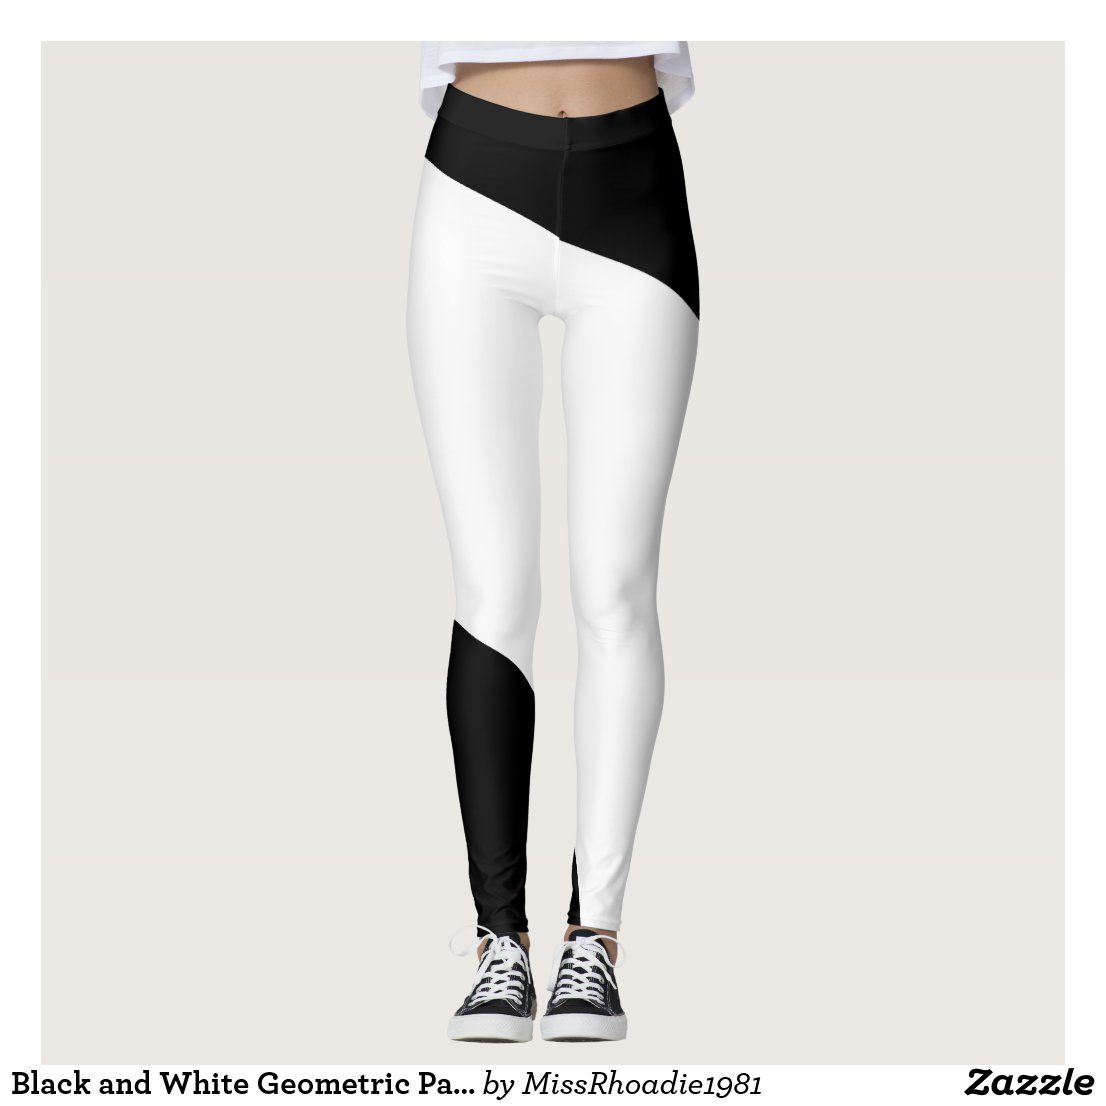 Black and White Geometric Pattern Leggings